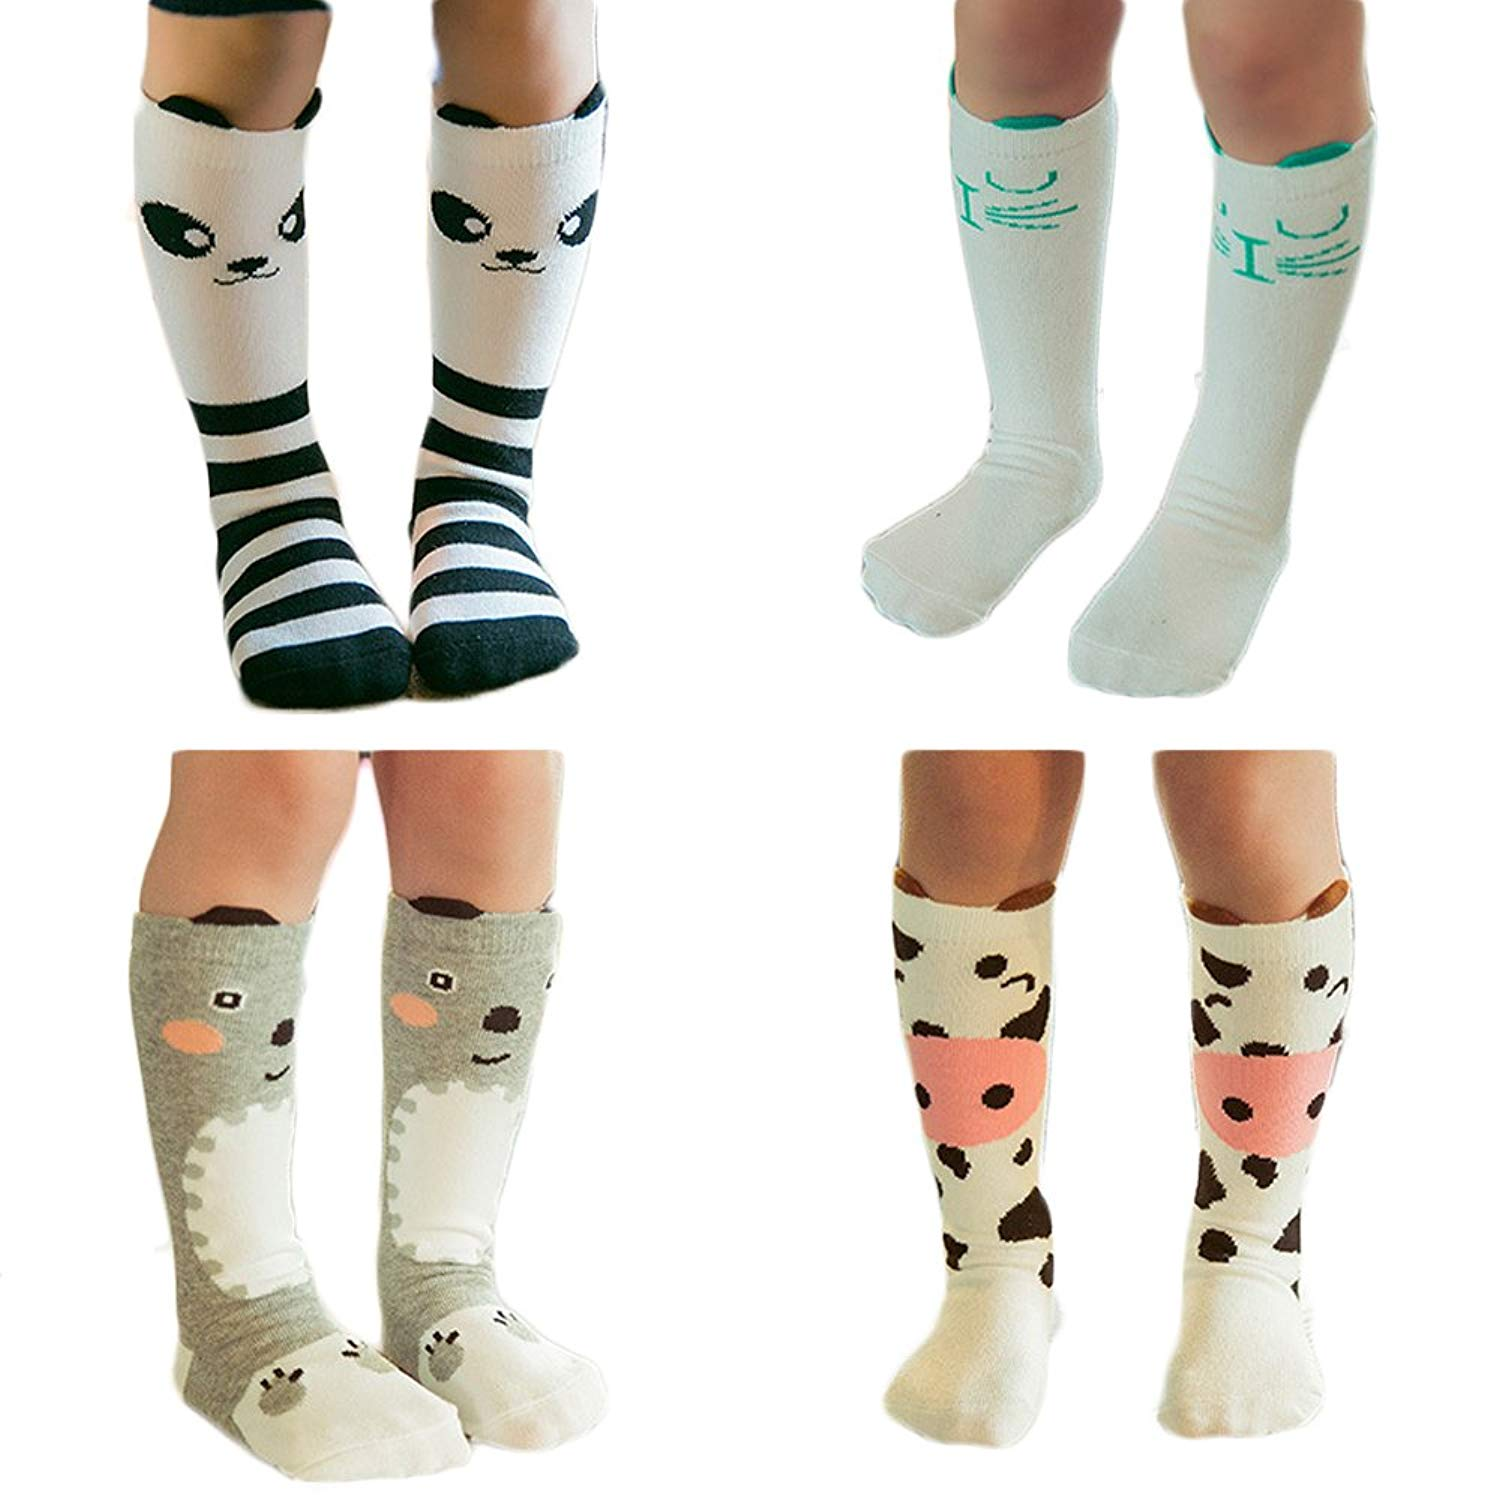 8b9a4f02498 Get Quotations · Unisex Baby Toddler Socks